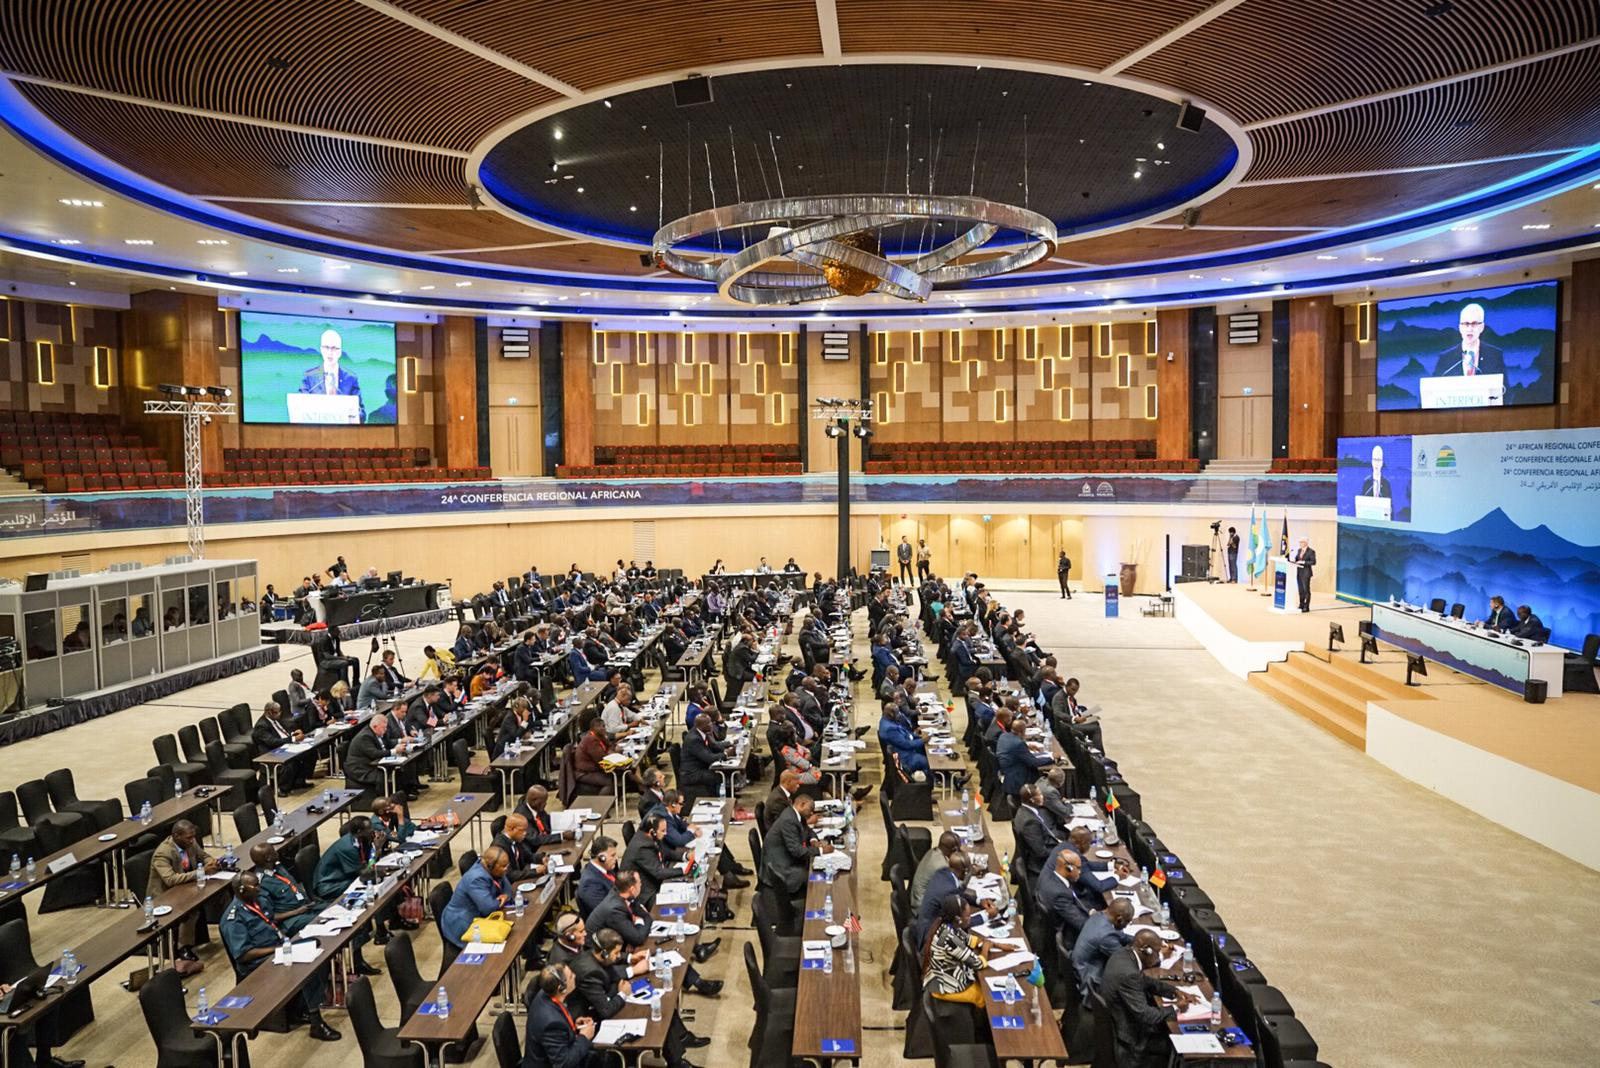 Nearly 160 Chiefs of Police and other senior law enforcement officials from 42 countries are attending the INTERPOL African Regional Conference in Kigali.